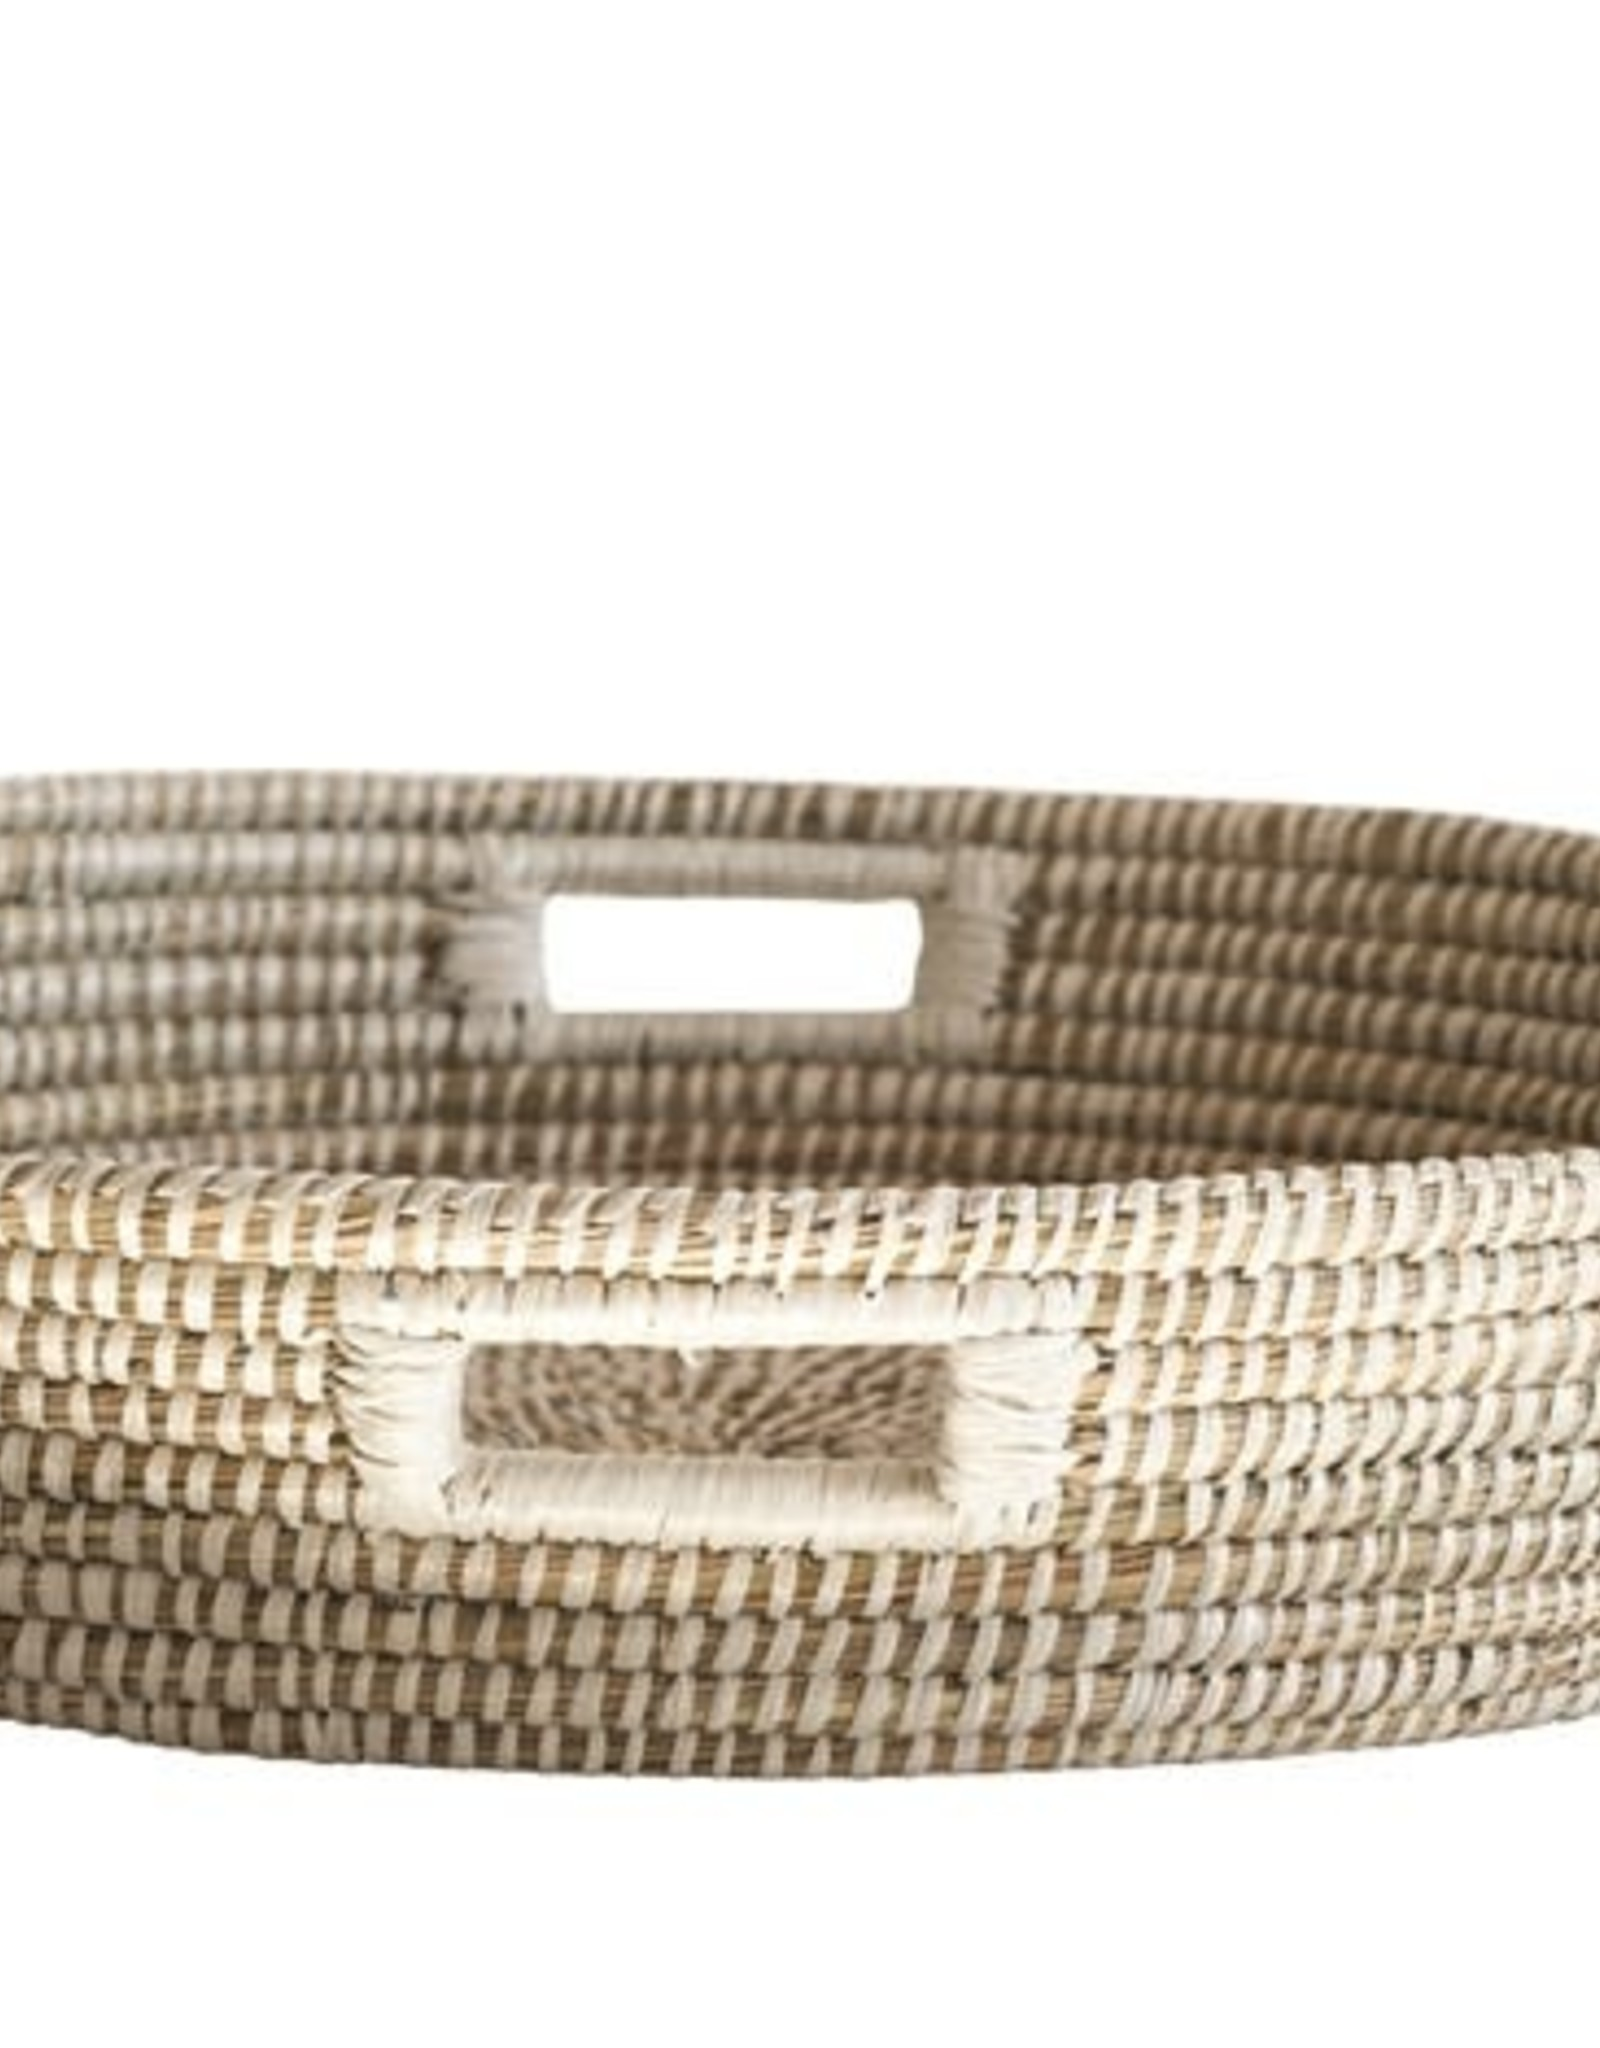 Hand Woven White and Natural Grass Basket